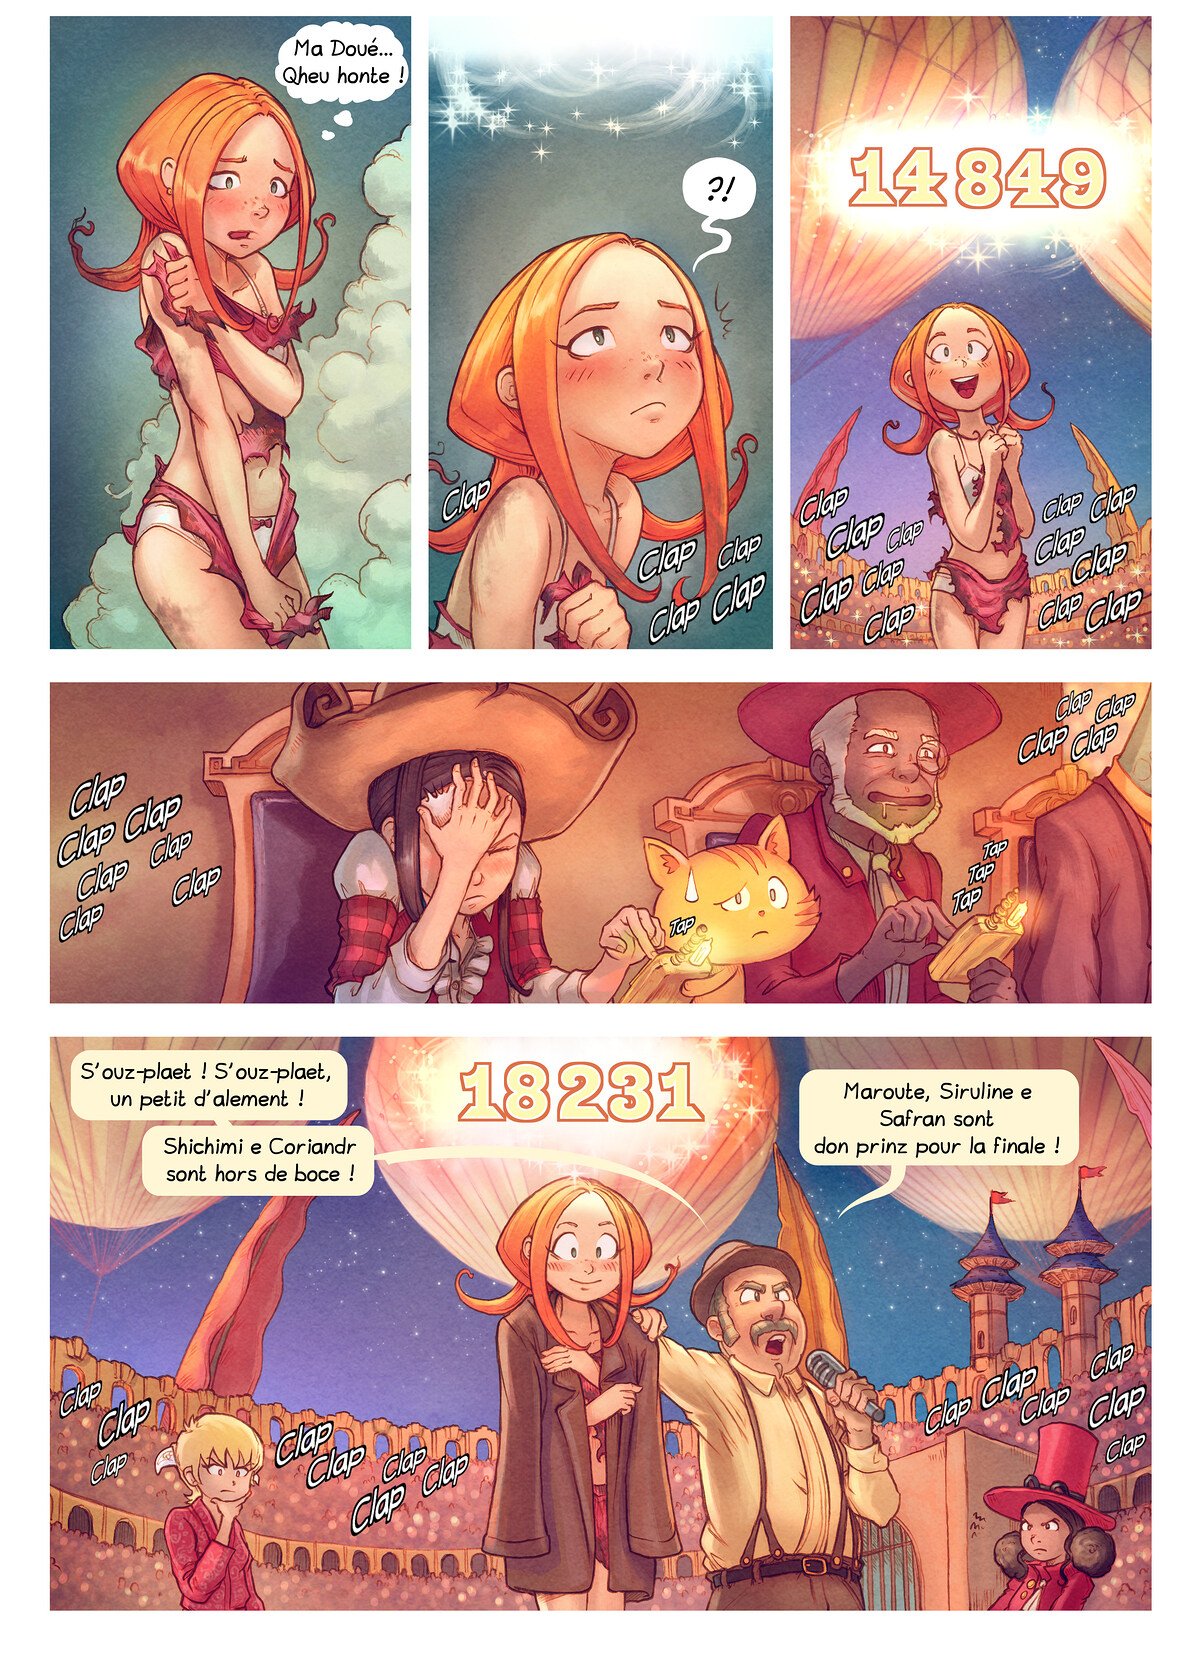 A webcomic page of Pepper&Carrot, episode 22 [go], page 9